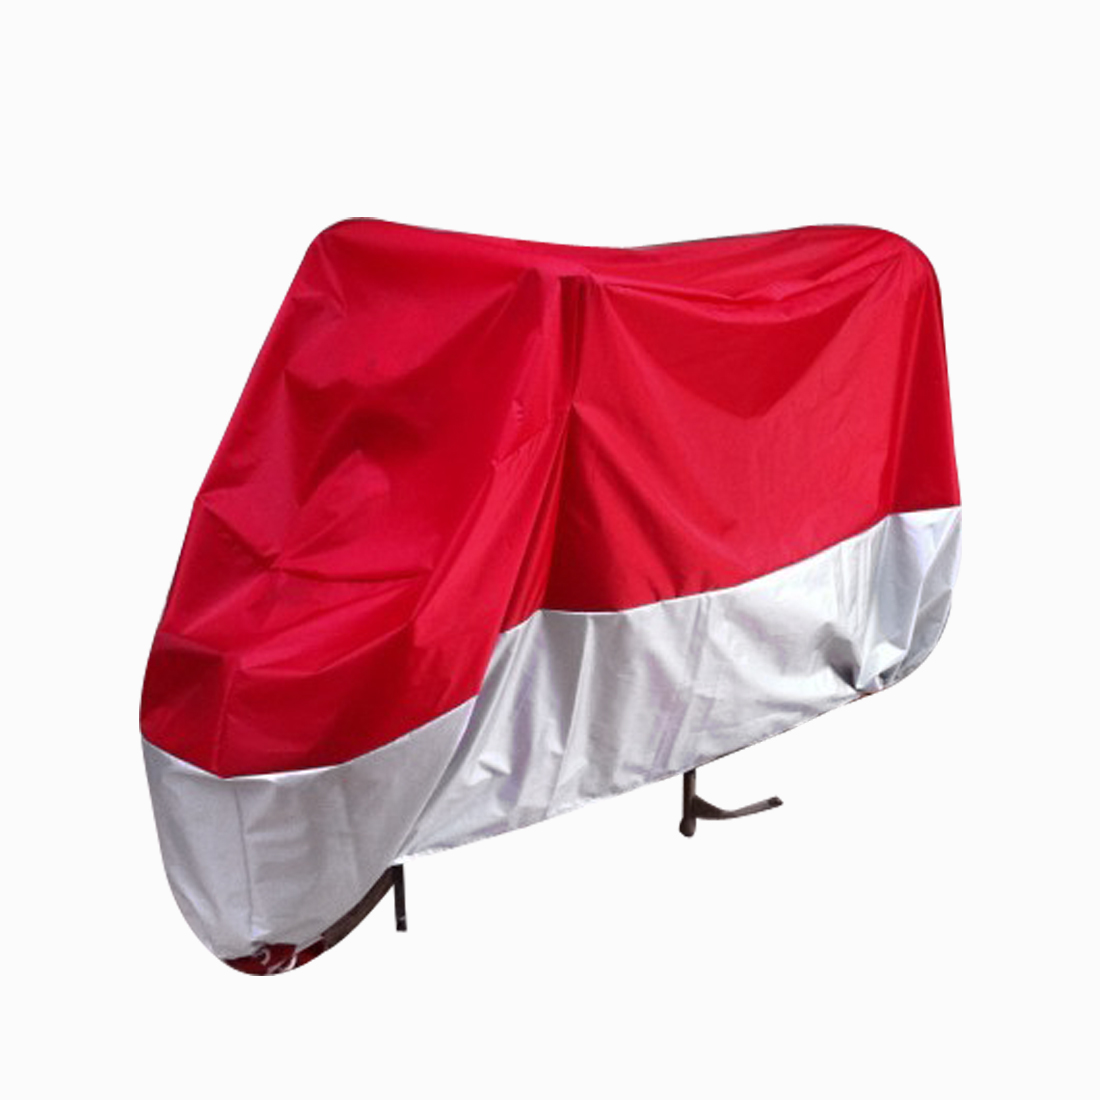 XL 180T Outdoor Anti-UV Motorbike Motorcycle Cover Rain Dust Resistant Red Silver